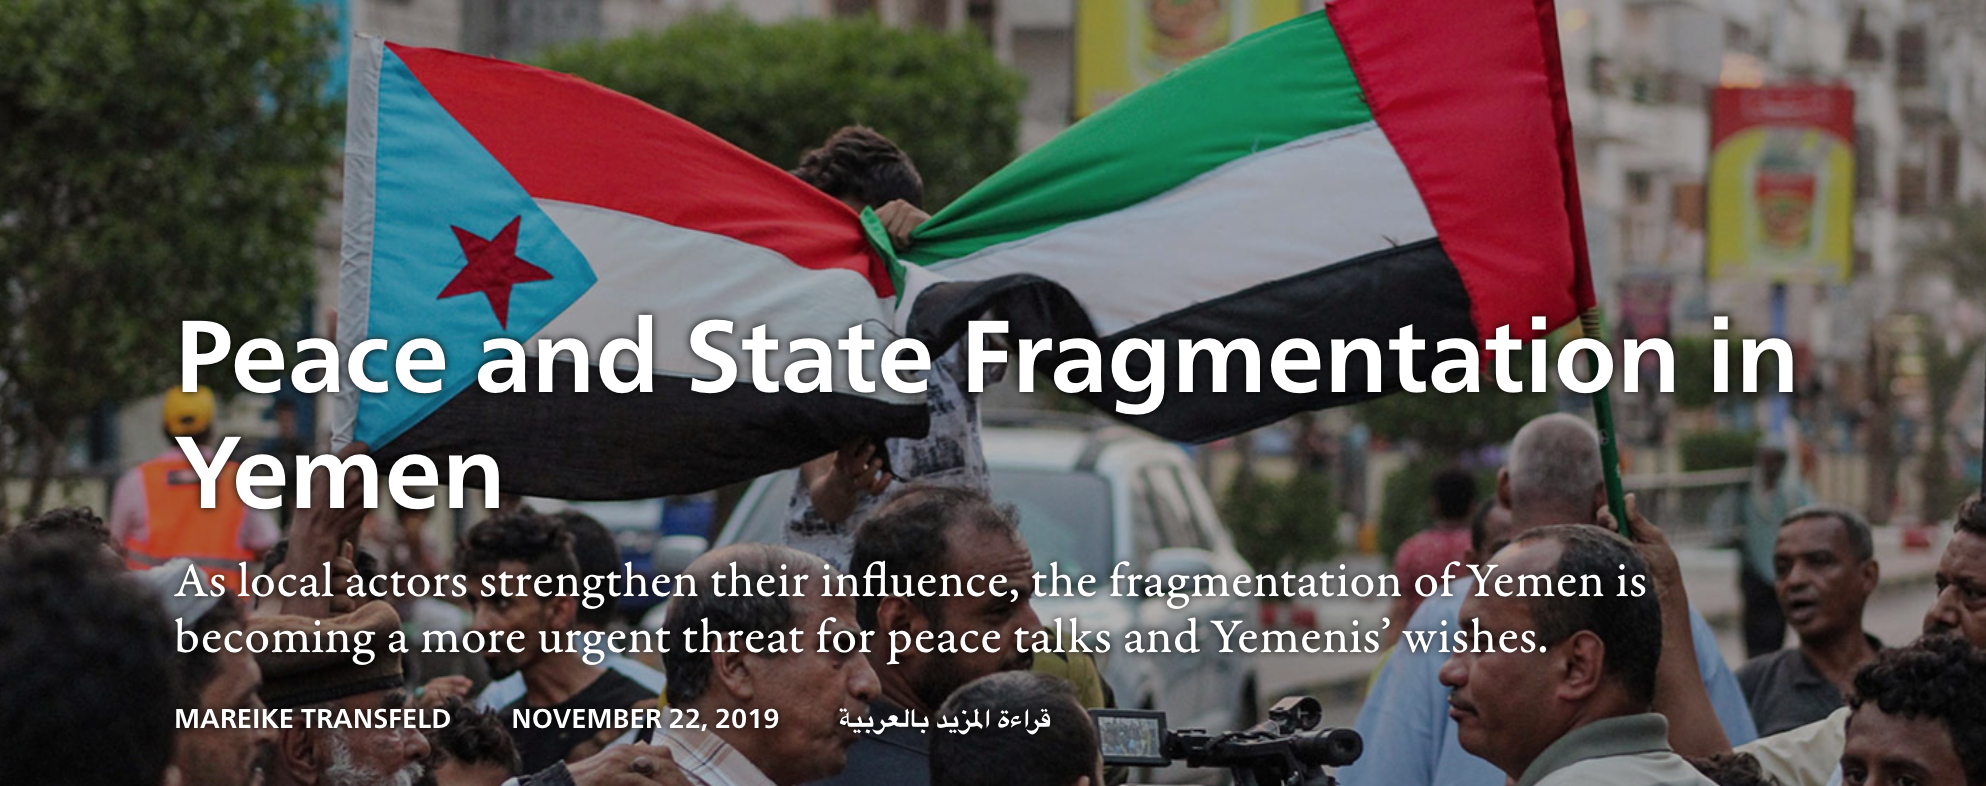 YPC Researcher Publishes in Sada Journal: Yemen's Fragmented State